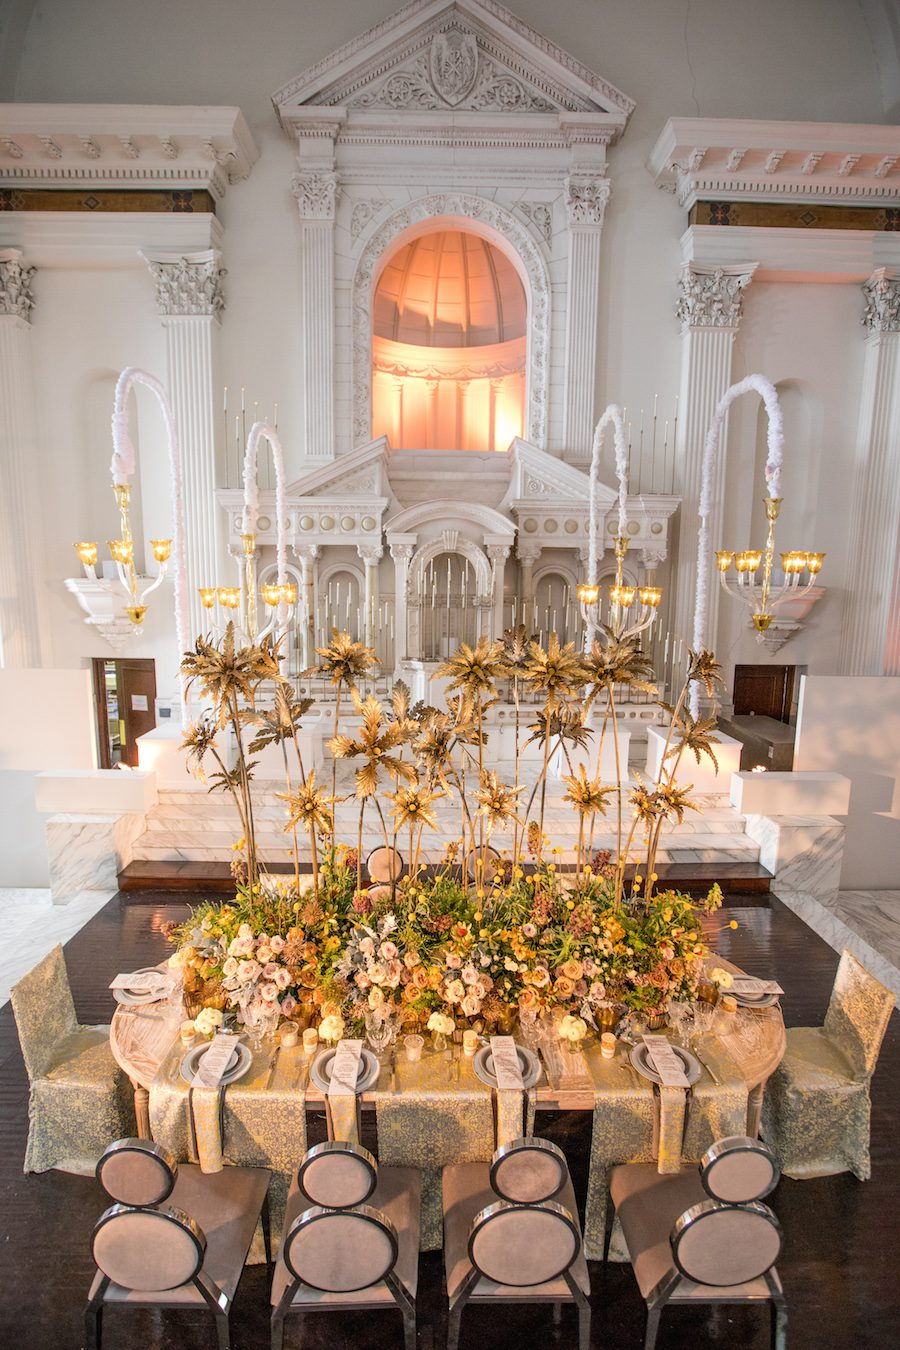 Eddie zaratsians luxe launch 2017 tabletop design featured on grace this unique and luxurious design incorporated hues of grey silver and yellow eddiezaratsiangraceormondeweddingstyleluxurytabledesign junglespirit Images